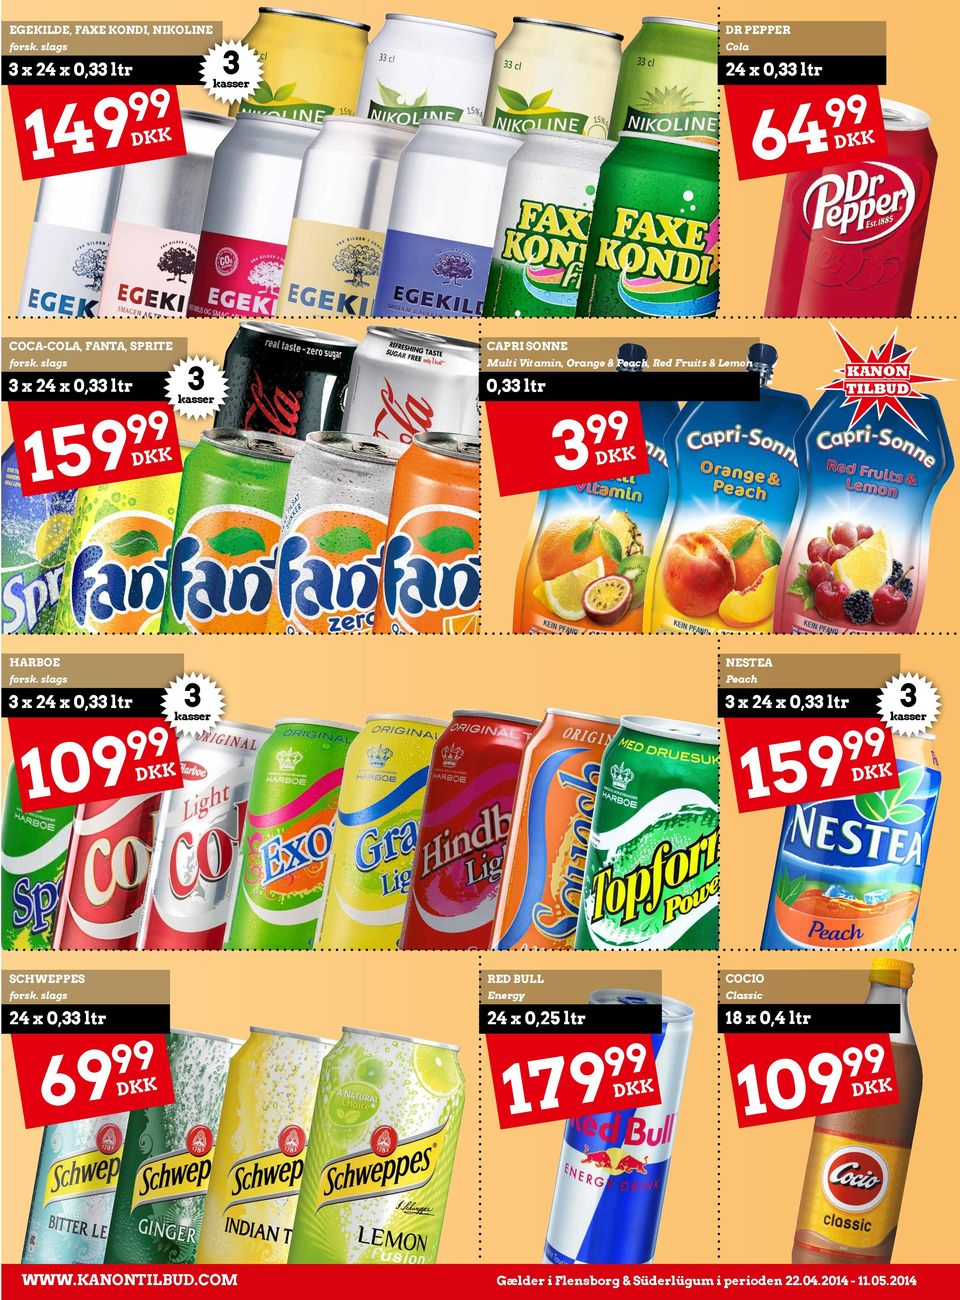 Fruits & Lemon x 0, ltr 159 Harboe Nestea Peach x 109 x 159